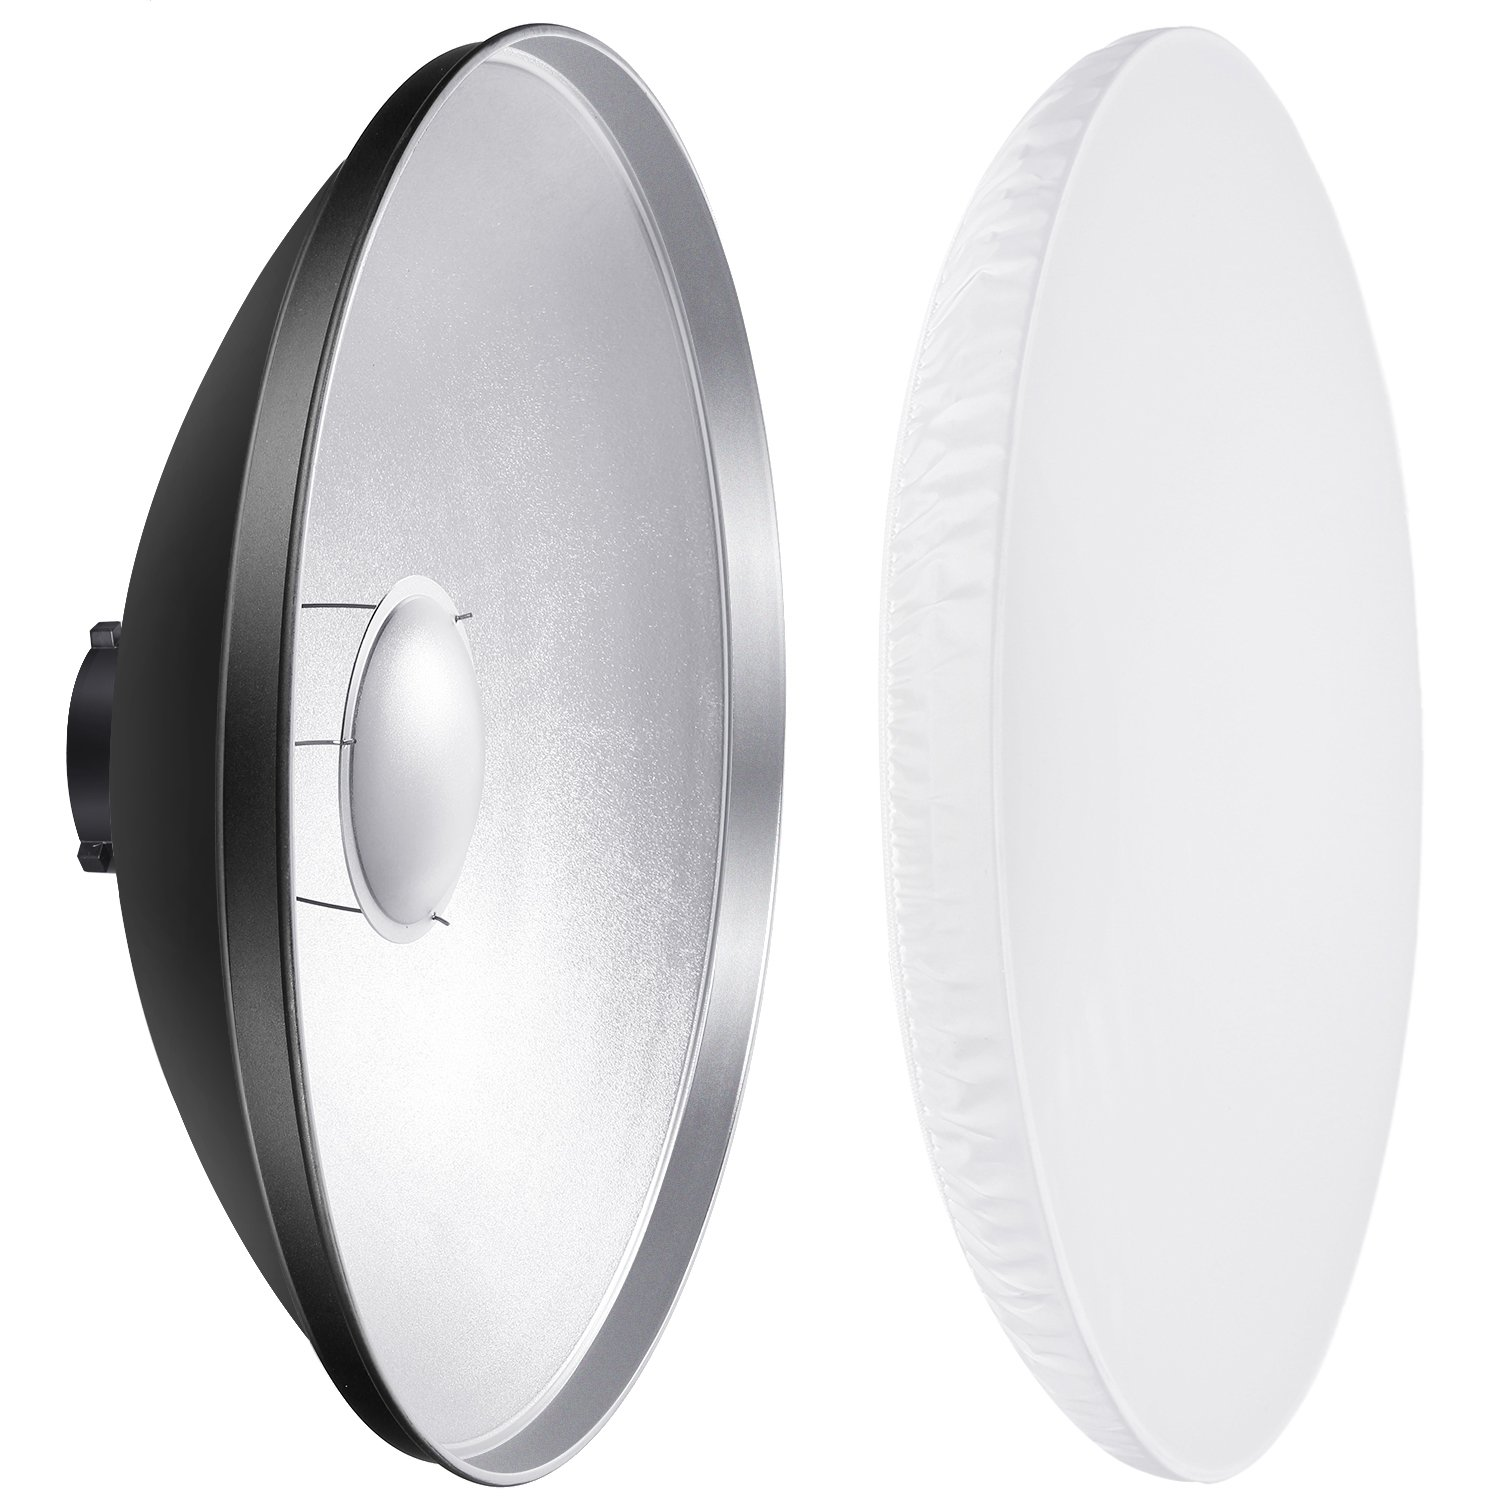 Neewer 16 inches/41 Centimeters Aluminum Standard Reflector.